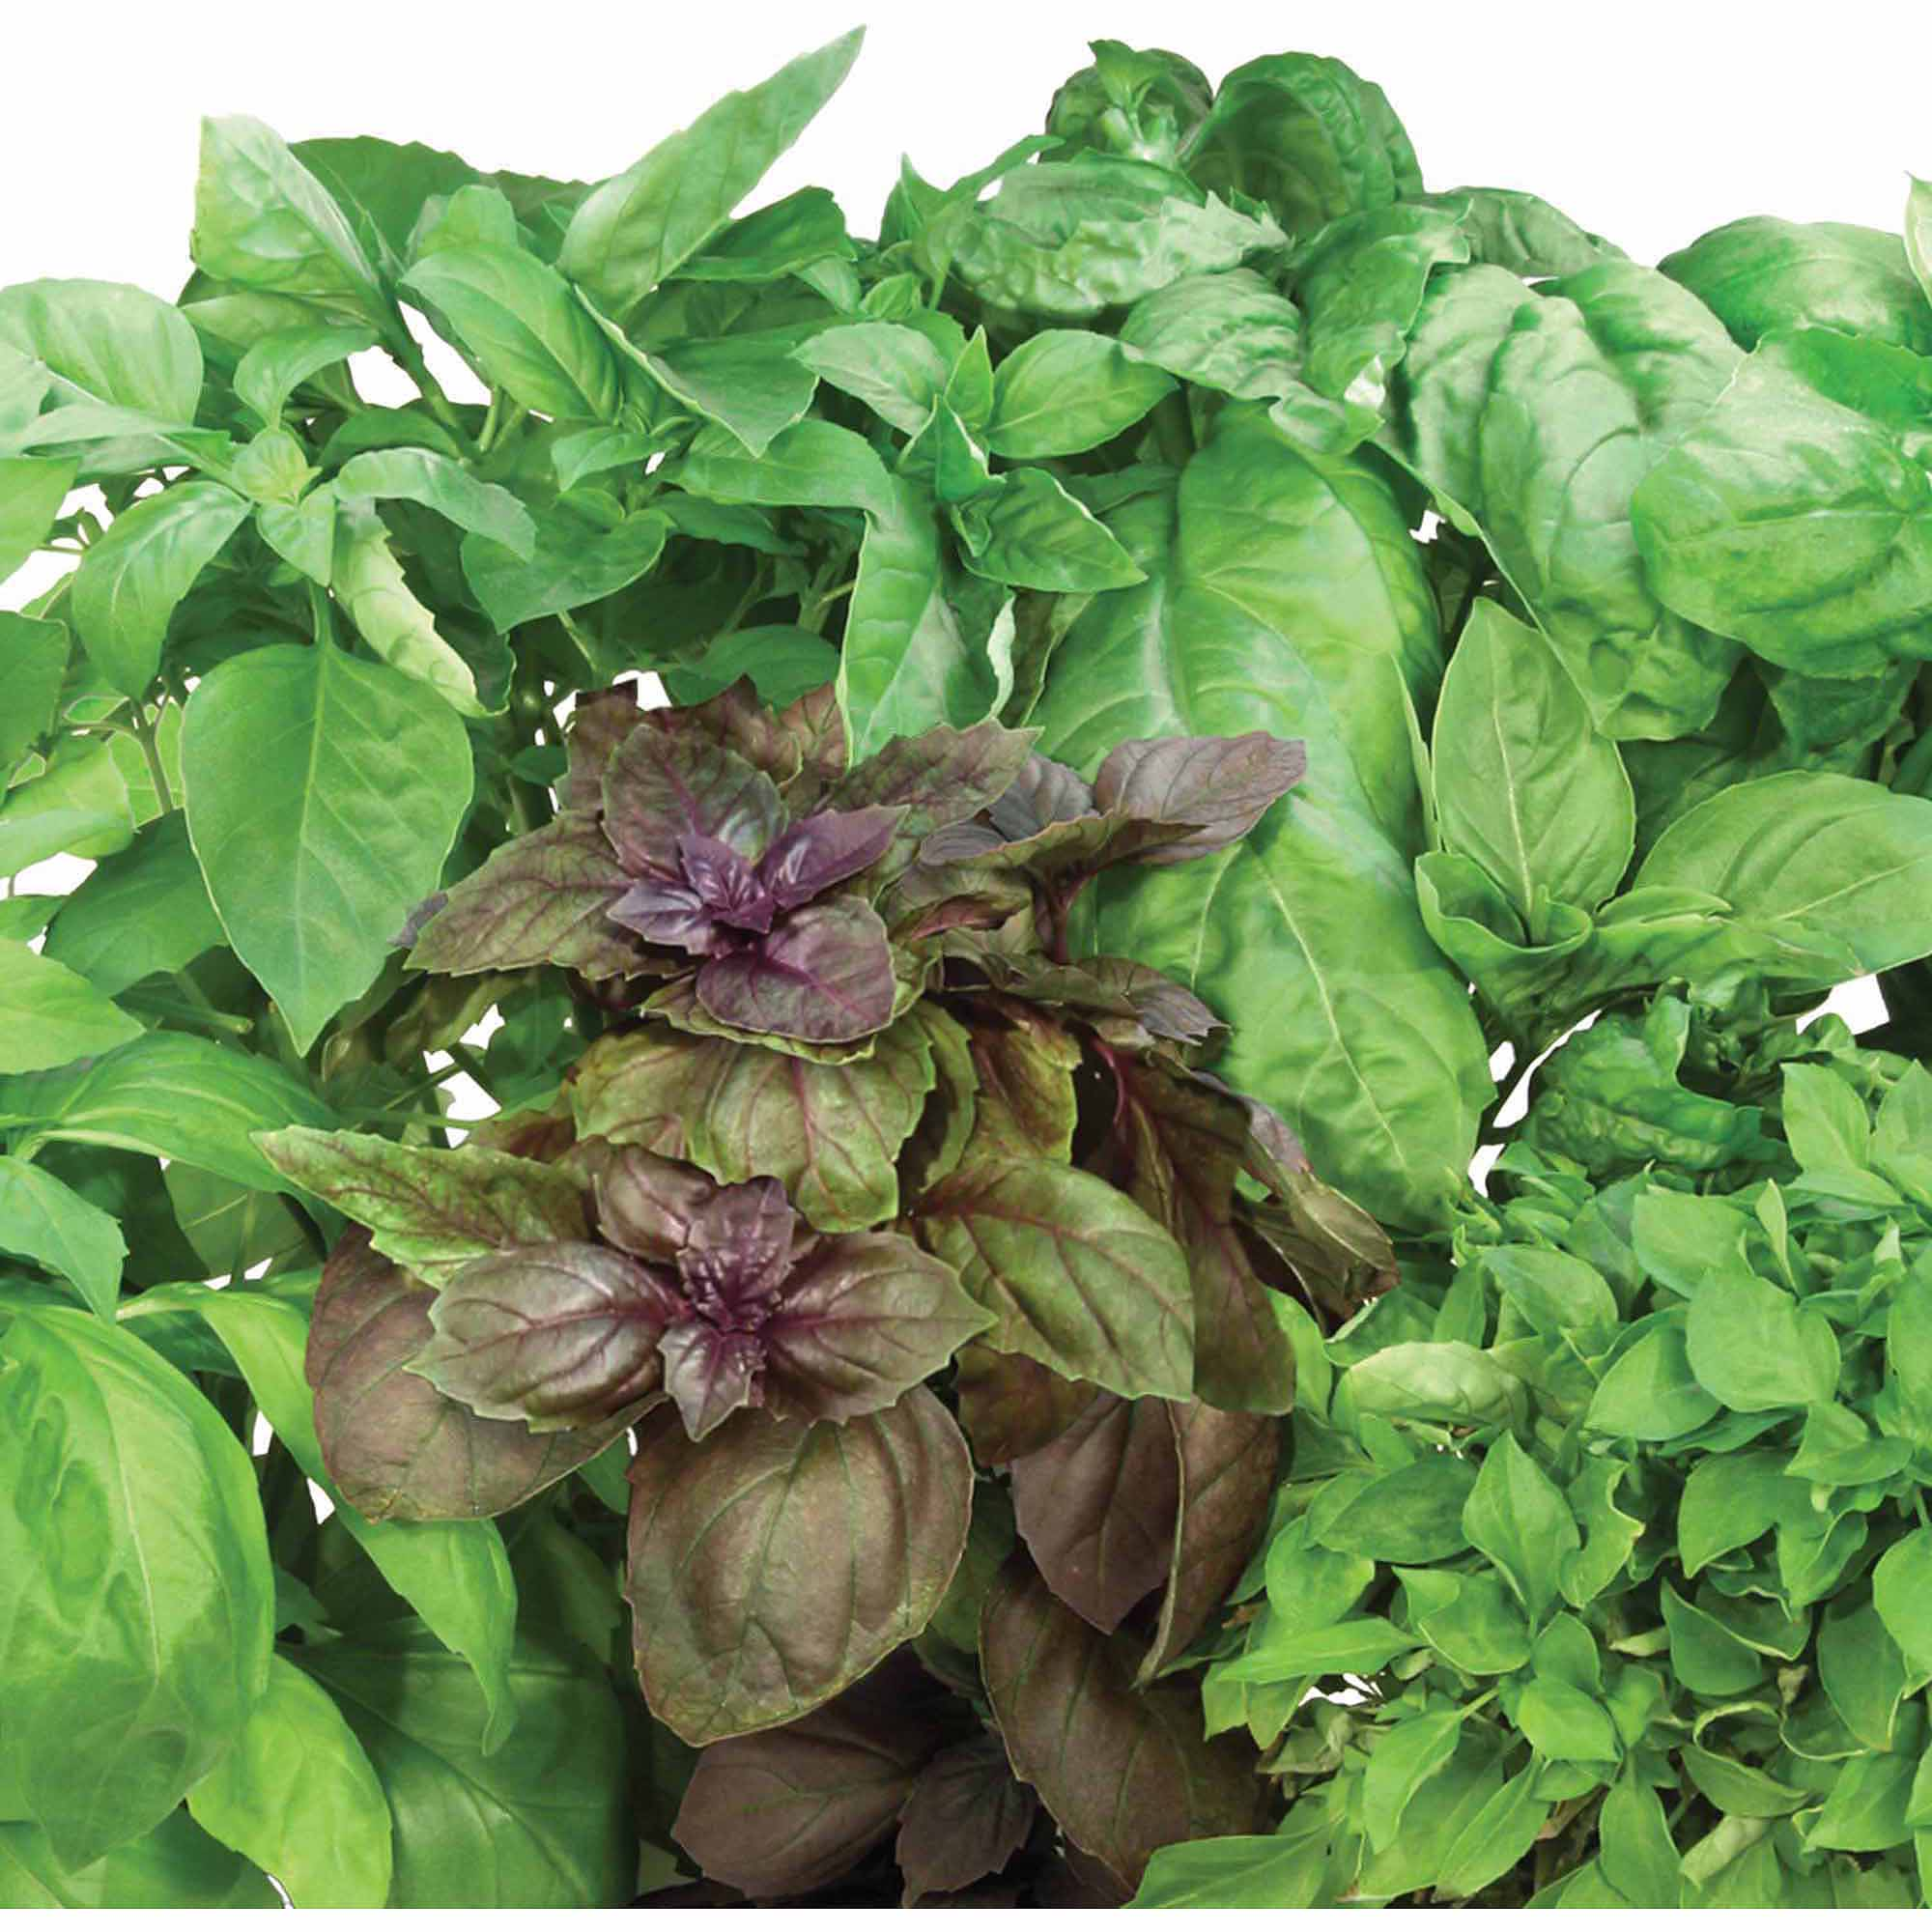 Miracle-Gro AeroGarden International Basil 7-Pod Seed Kit